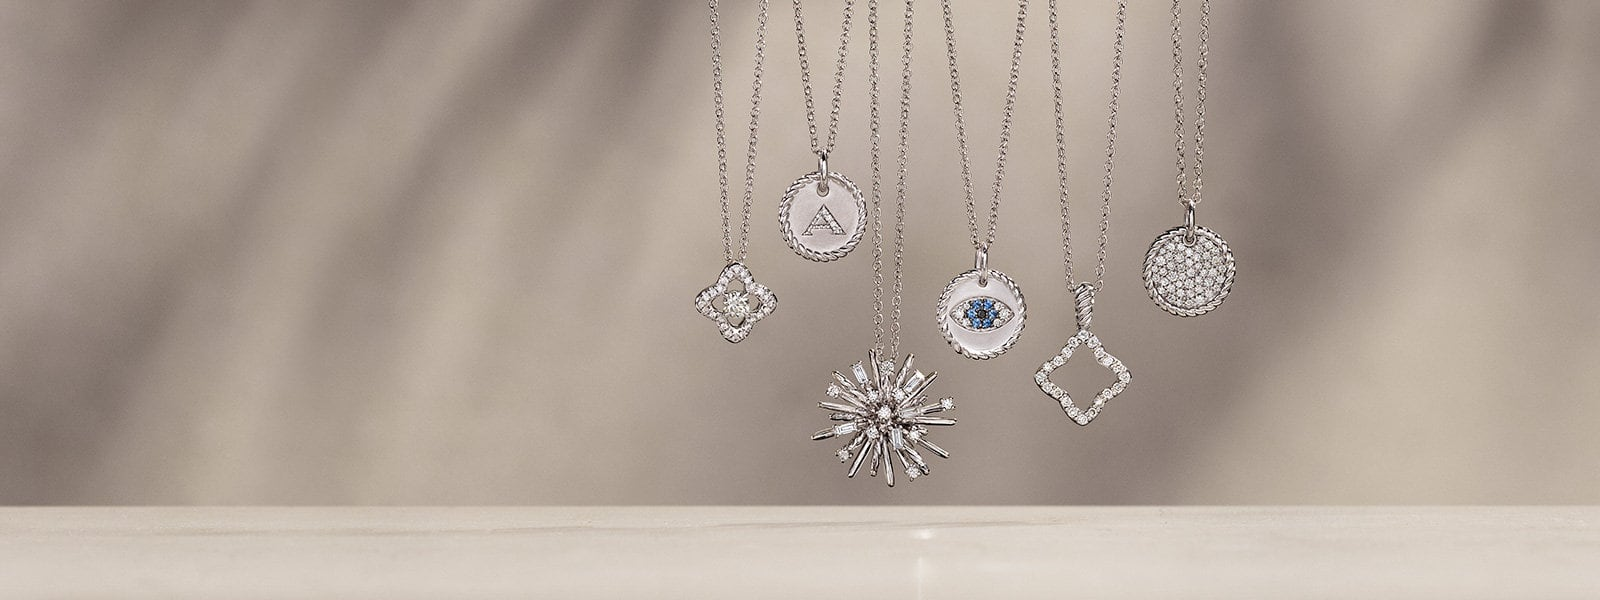 In 18K white gold with pavé diamonds and sapphires, five David Yurman charm necklaces from the Venetian Quatrefoil Collection, Supernova and Cable Collectibles hang in front of and above beige-colored stone surfaces with long shadows.